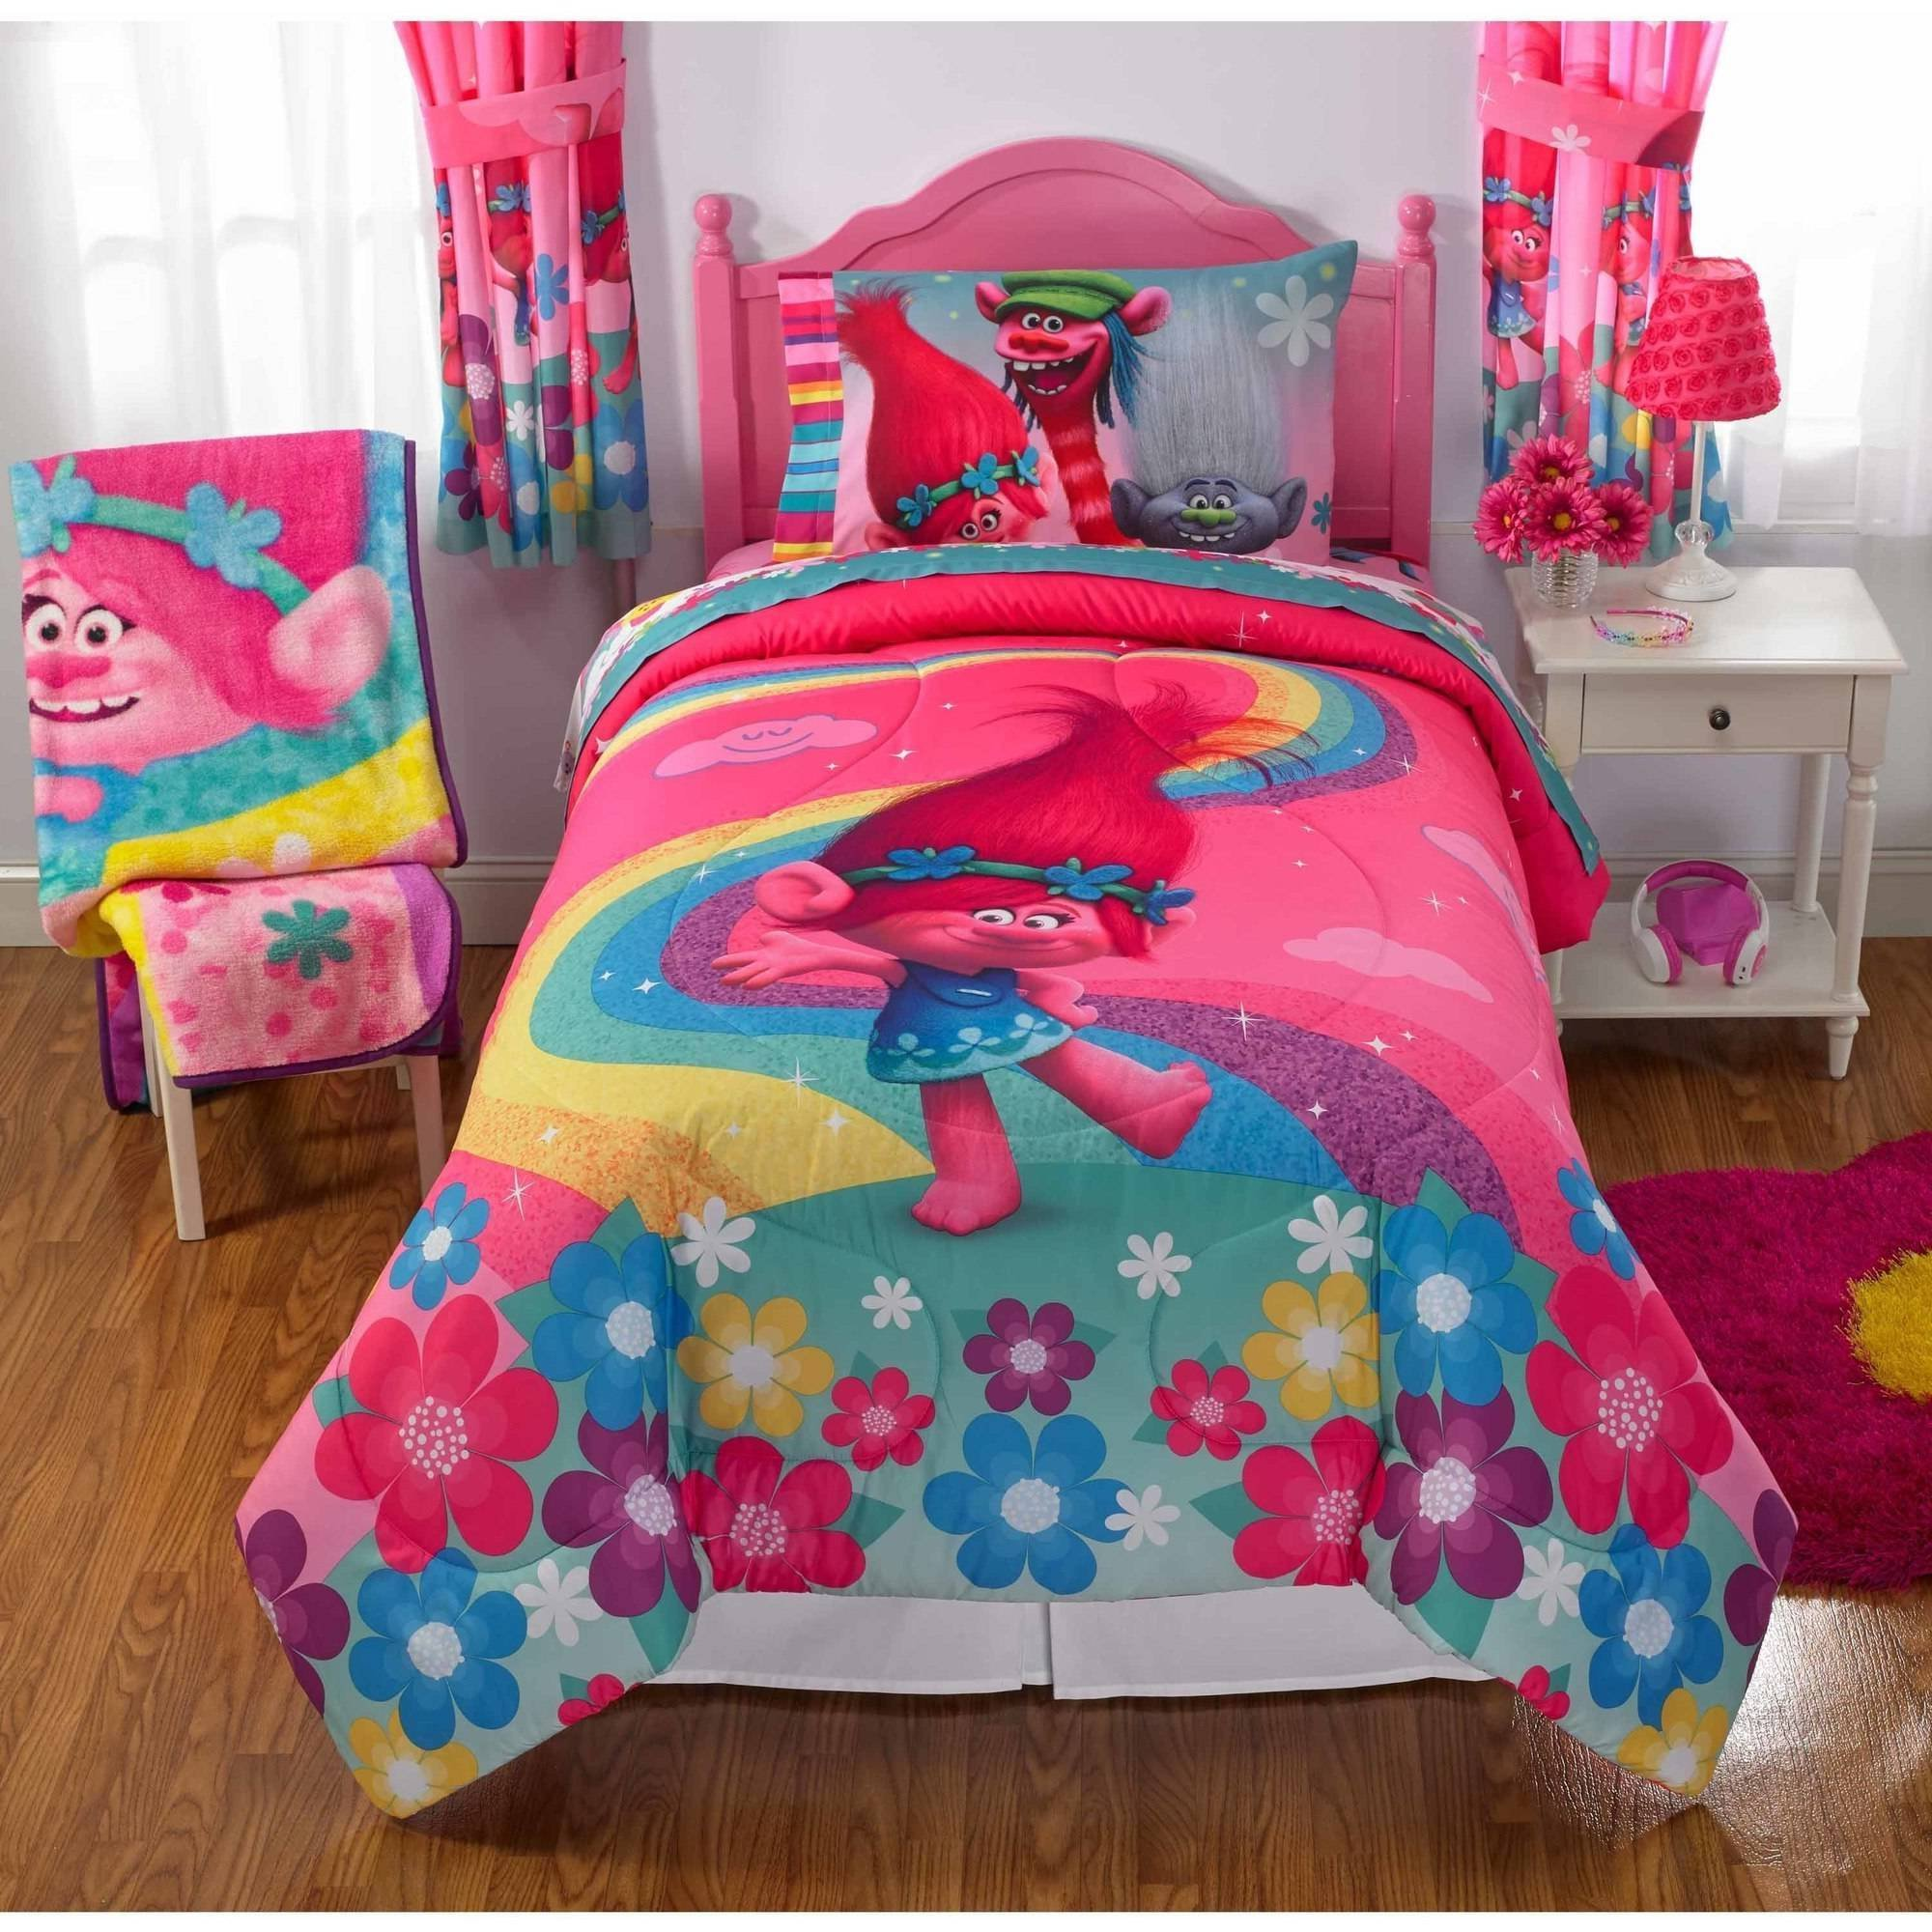 4 Piece Girls Pink Blue Kids Dreamworks Trolls Comforter Twin Set, Yellow Purple Kids Bedding Rainbow Princess Poppy Flower Design, Branch Guy Diamond Cartoon Characters Fun Adventure Teen, Polyester